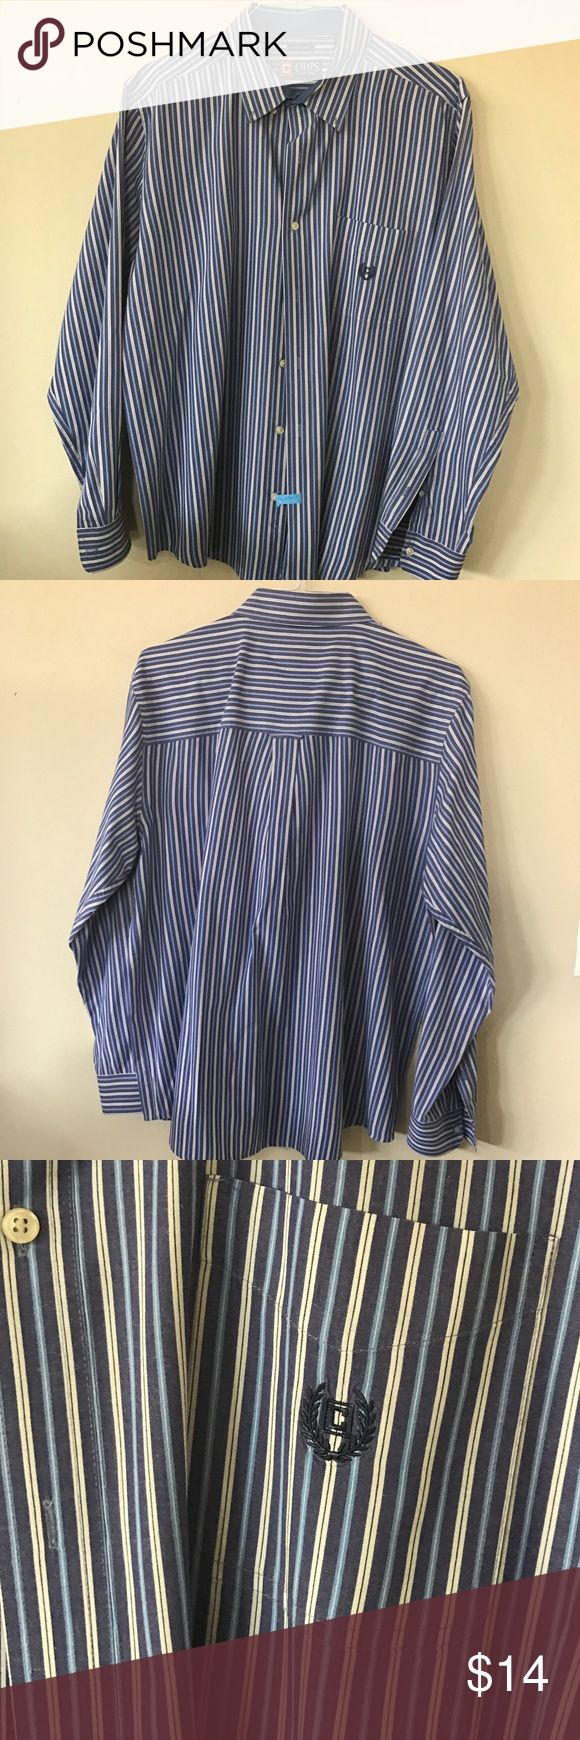 Chaps long sleeve button down shirt Chaps long sleeve button down shirt in blue with shades of blue and yellow stripes. Chaps logo on front pocket in blue. Buttons at the collar to hold tie in. Chaps Shirts